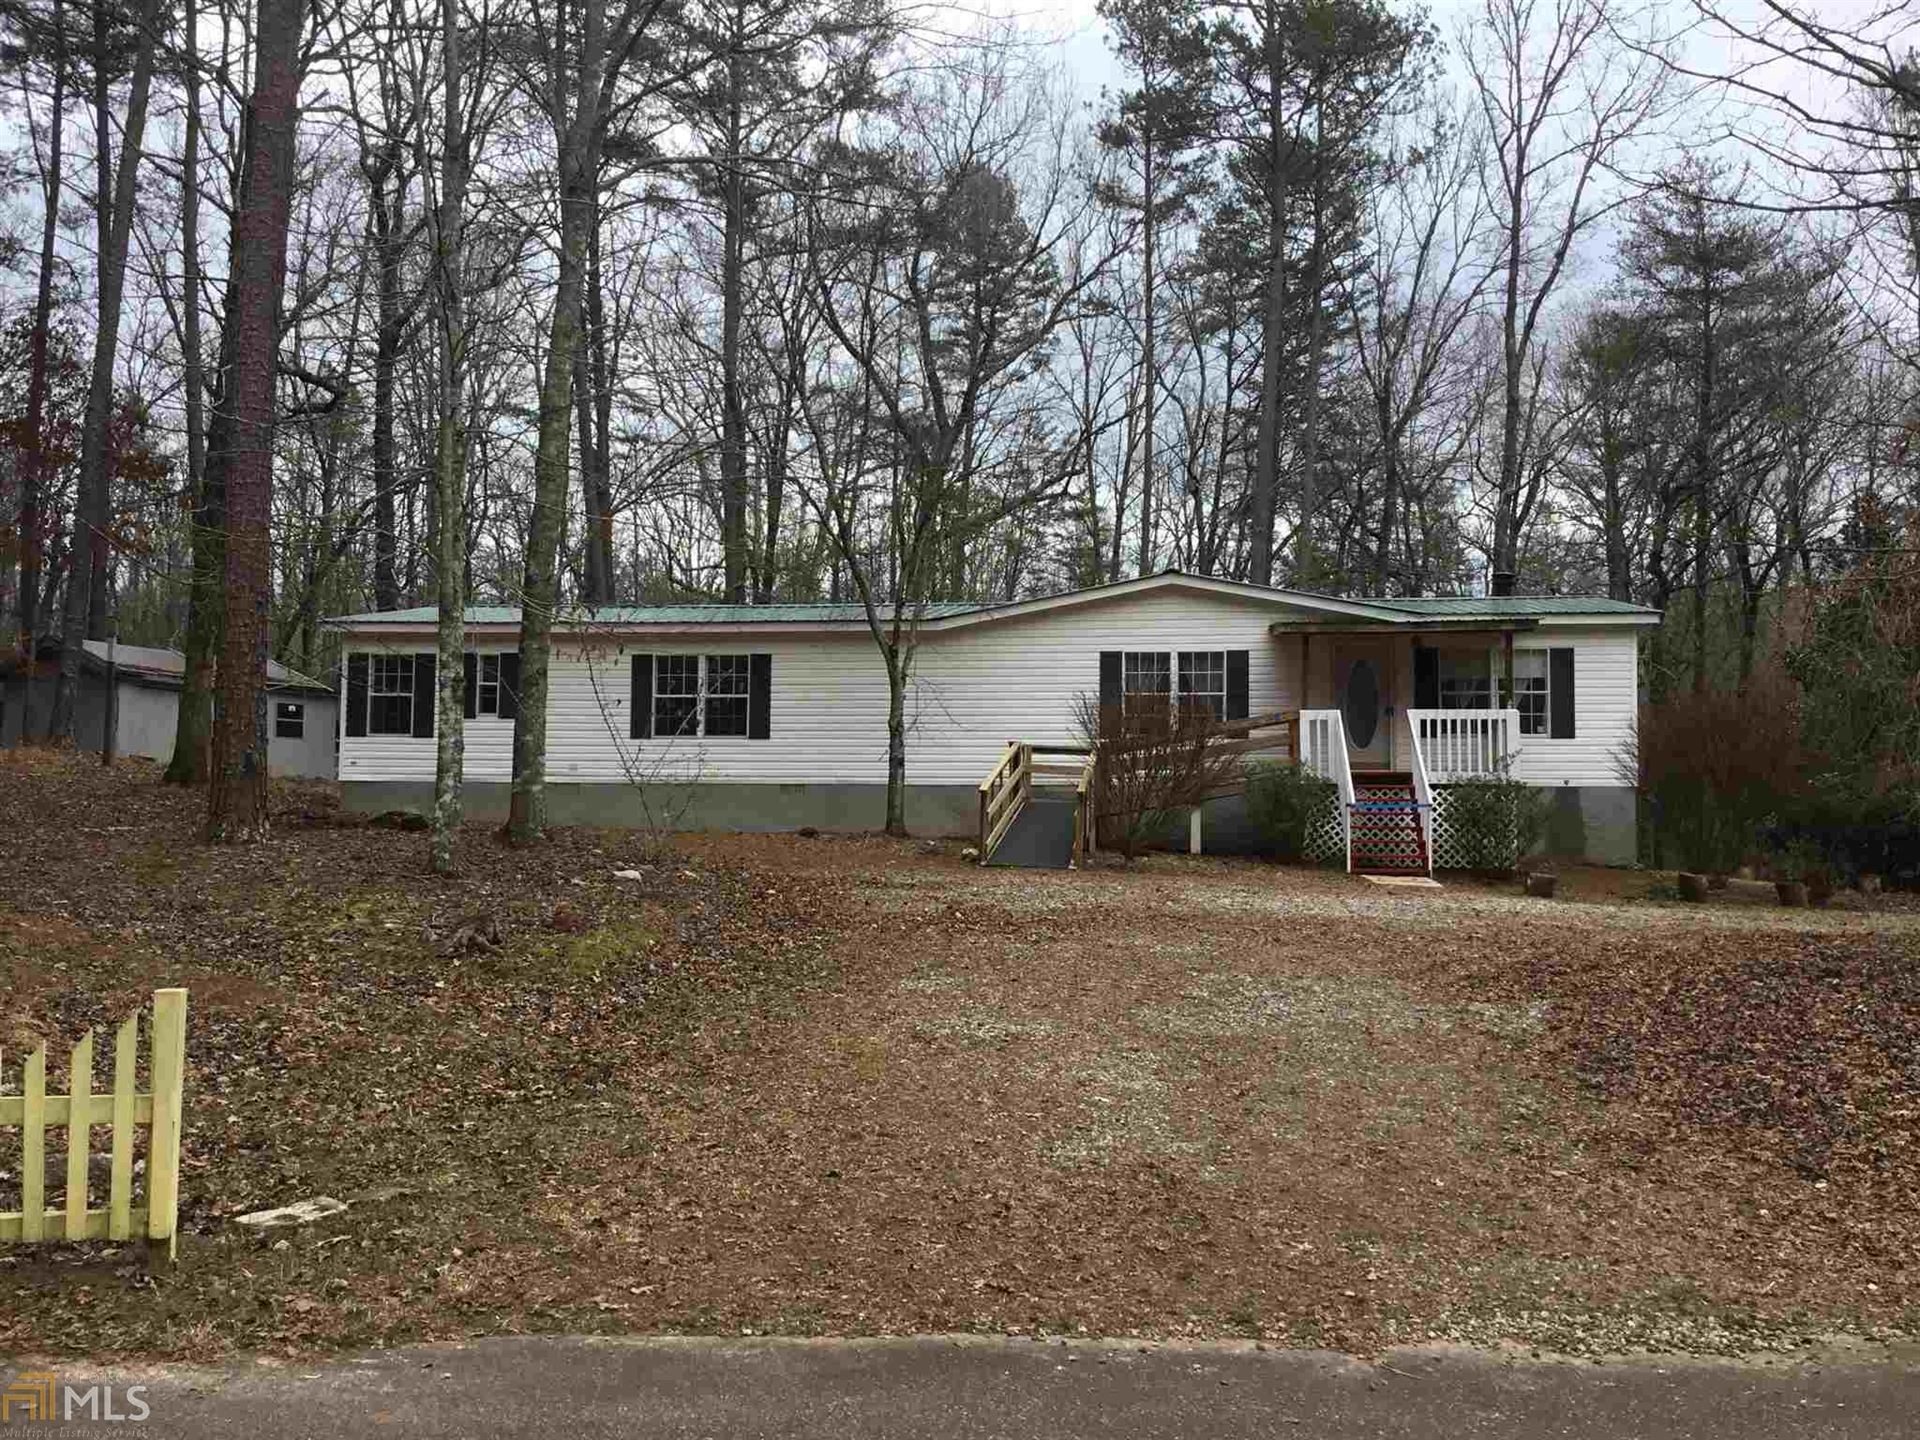 149 Hickory Hill Trl, Cleveland, GA 30528 - MLS#: 8915617